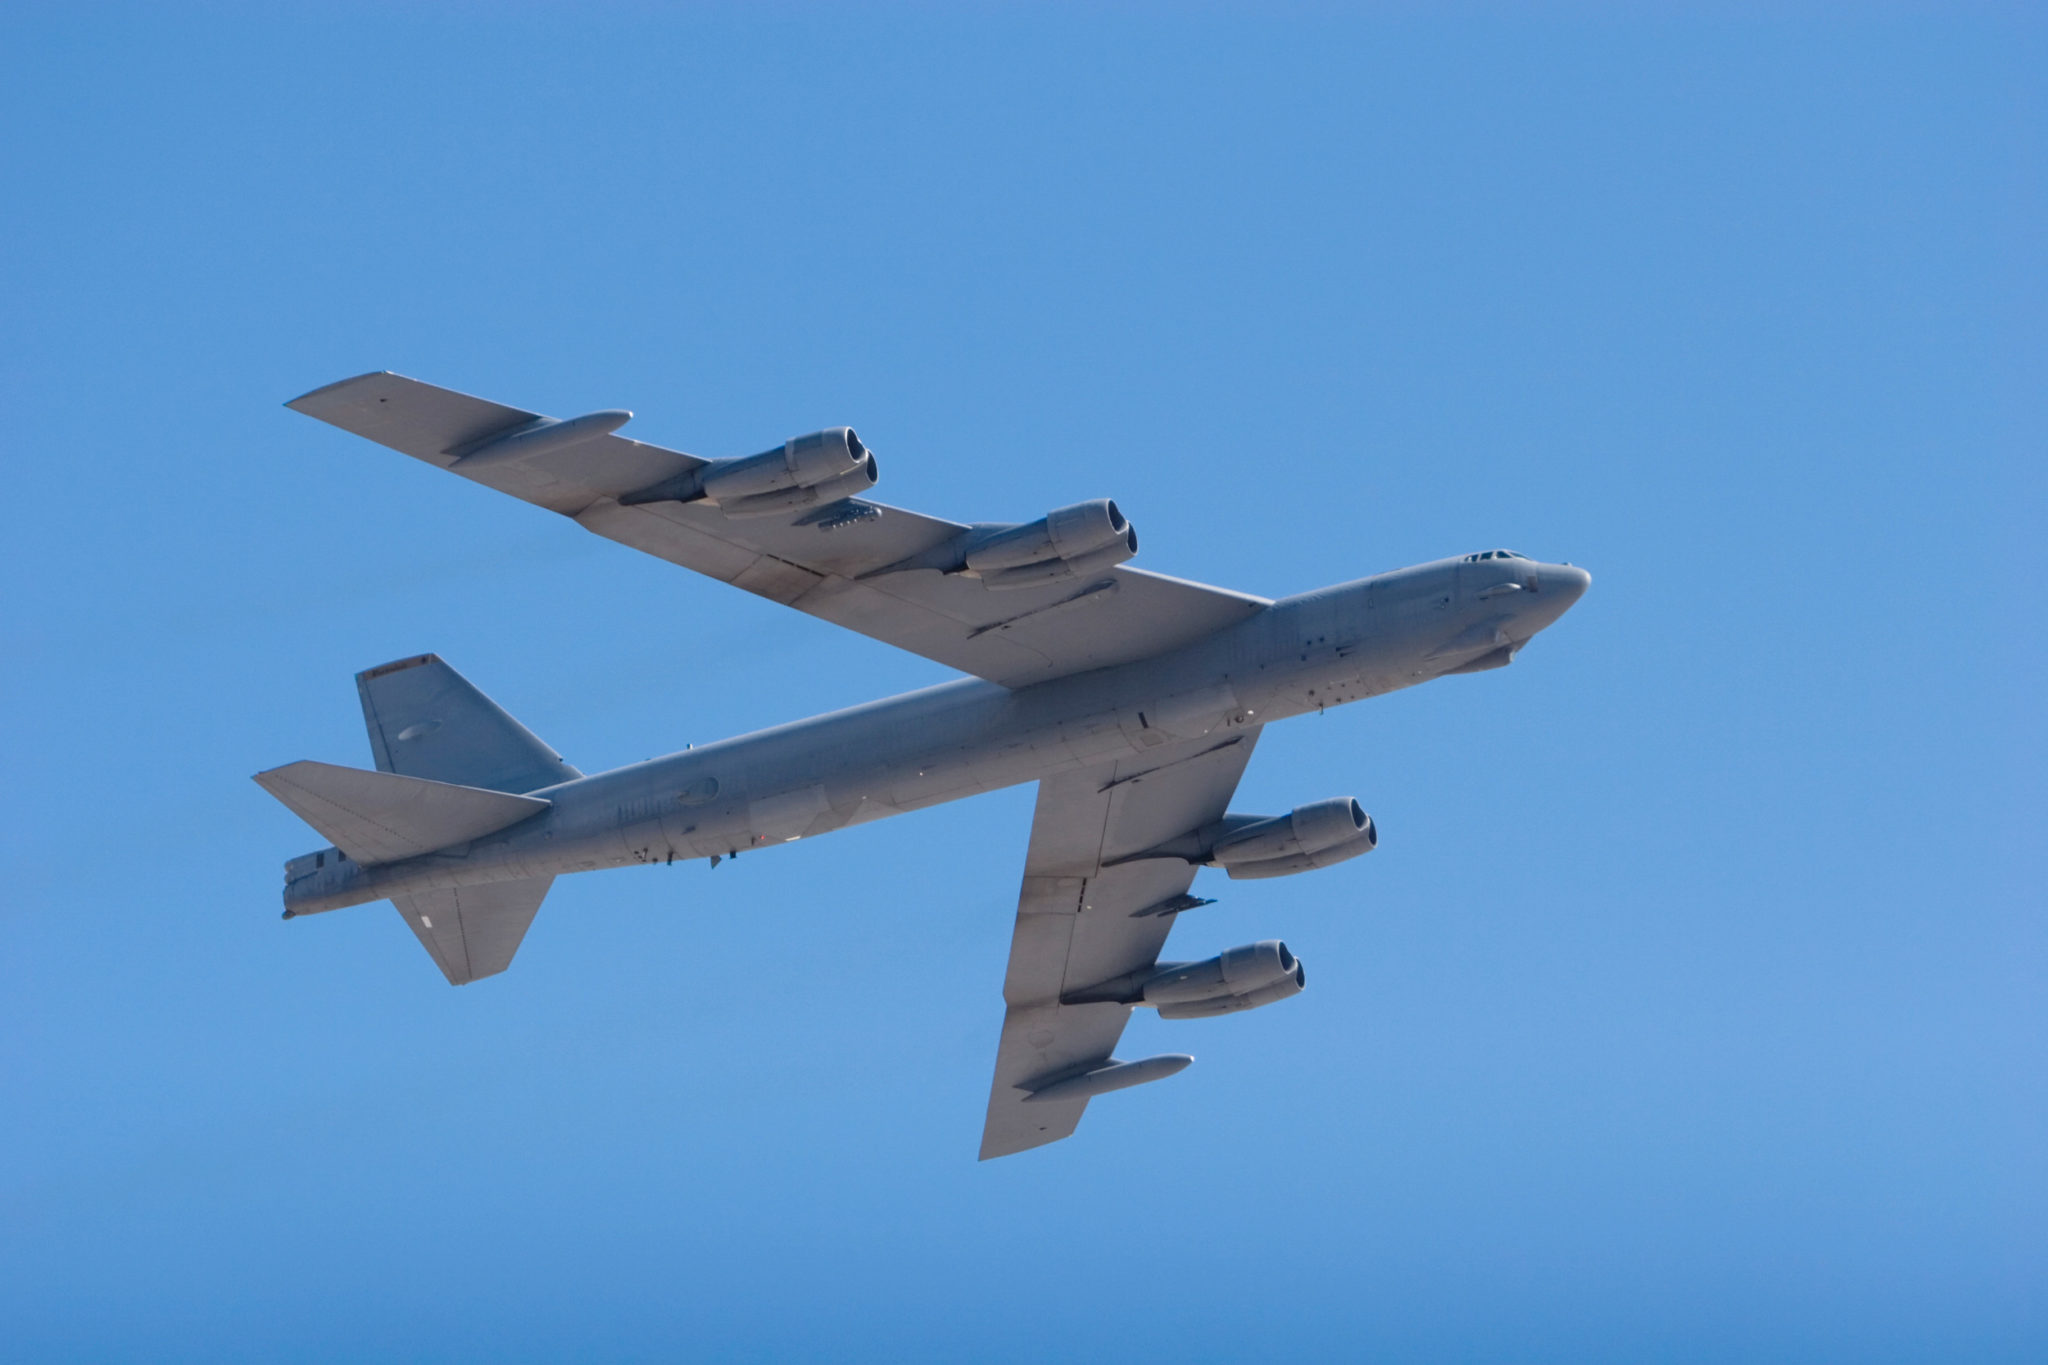 U.S. sends bombers over disputed South China Sea for second time in 10 days